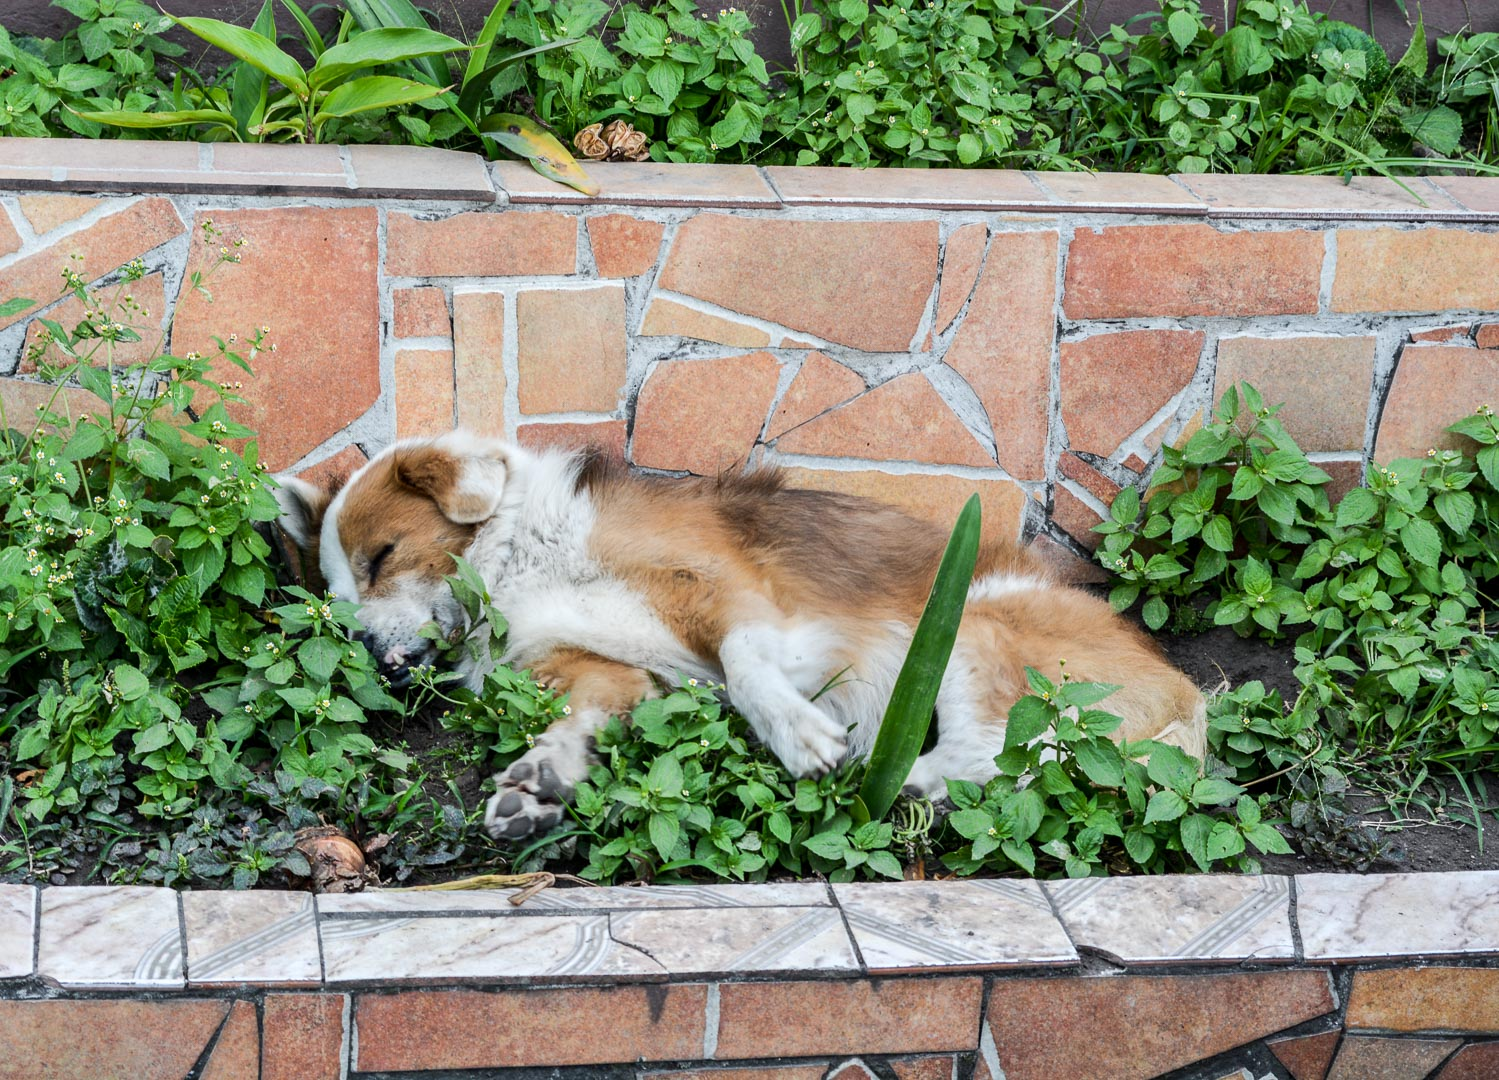 Napping in someone's garden